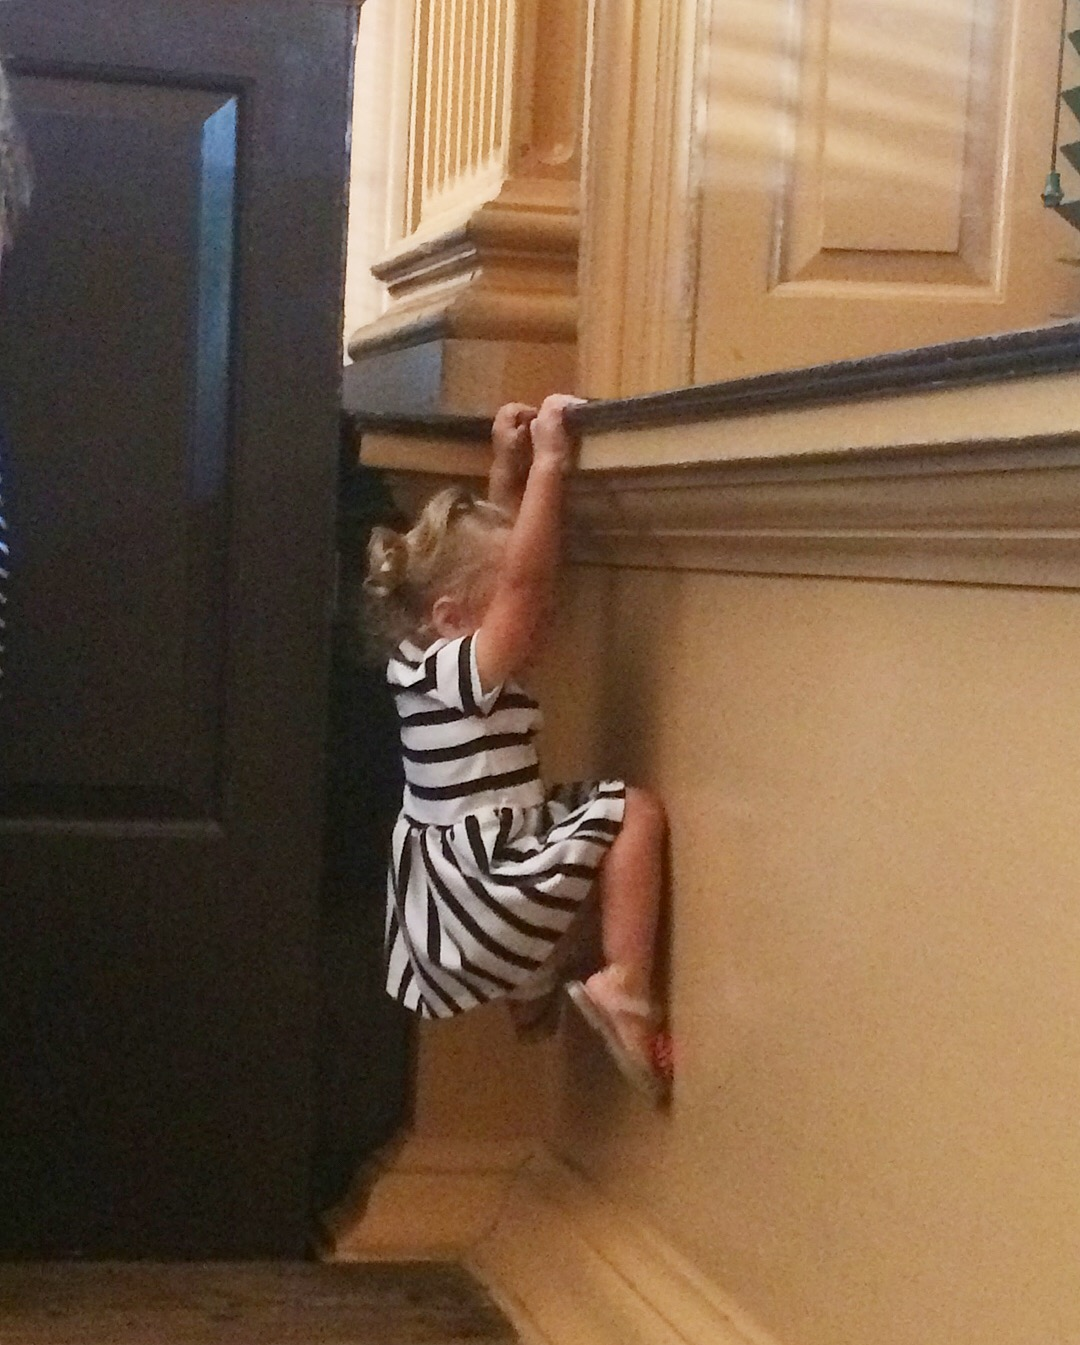 Our toddlers were literally climbing the walls. -